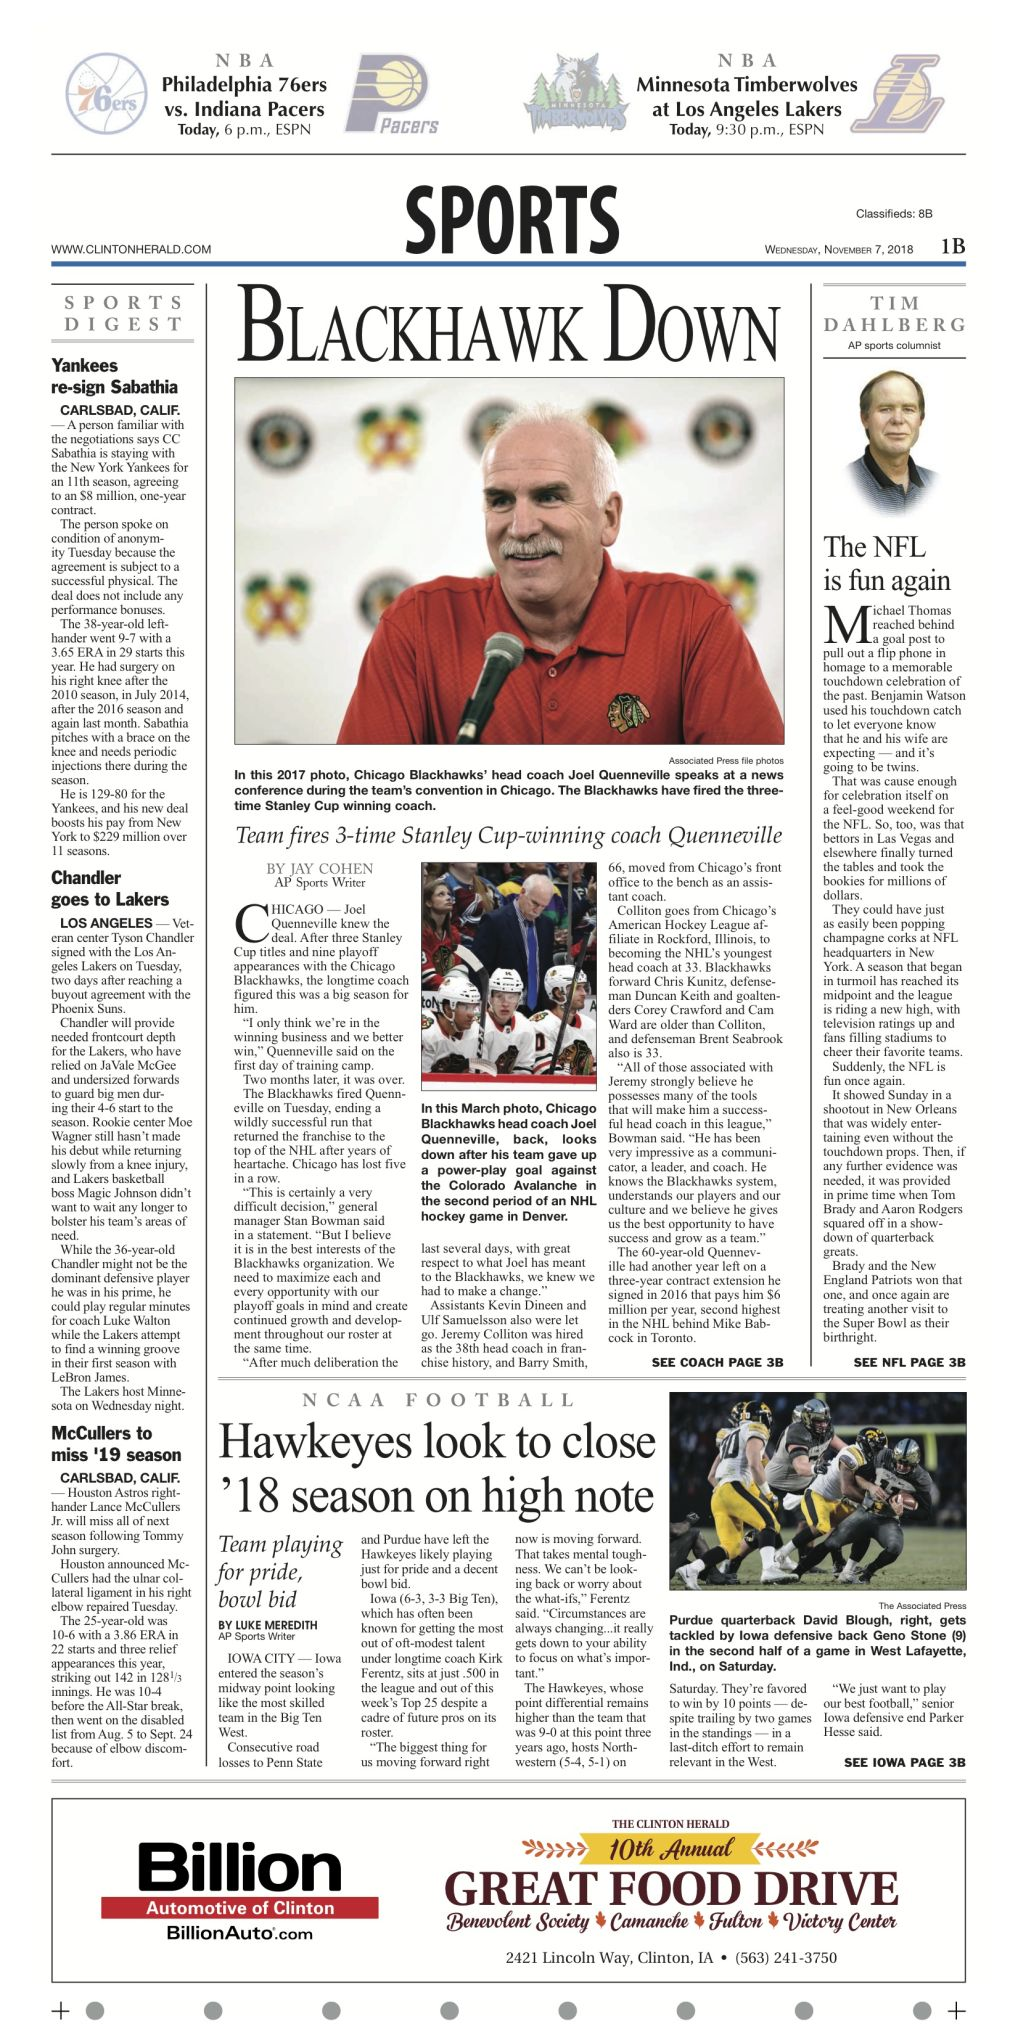 The sports page for November 7, 2018